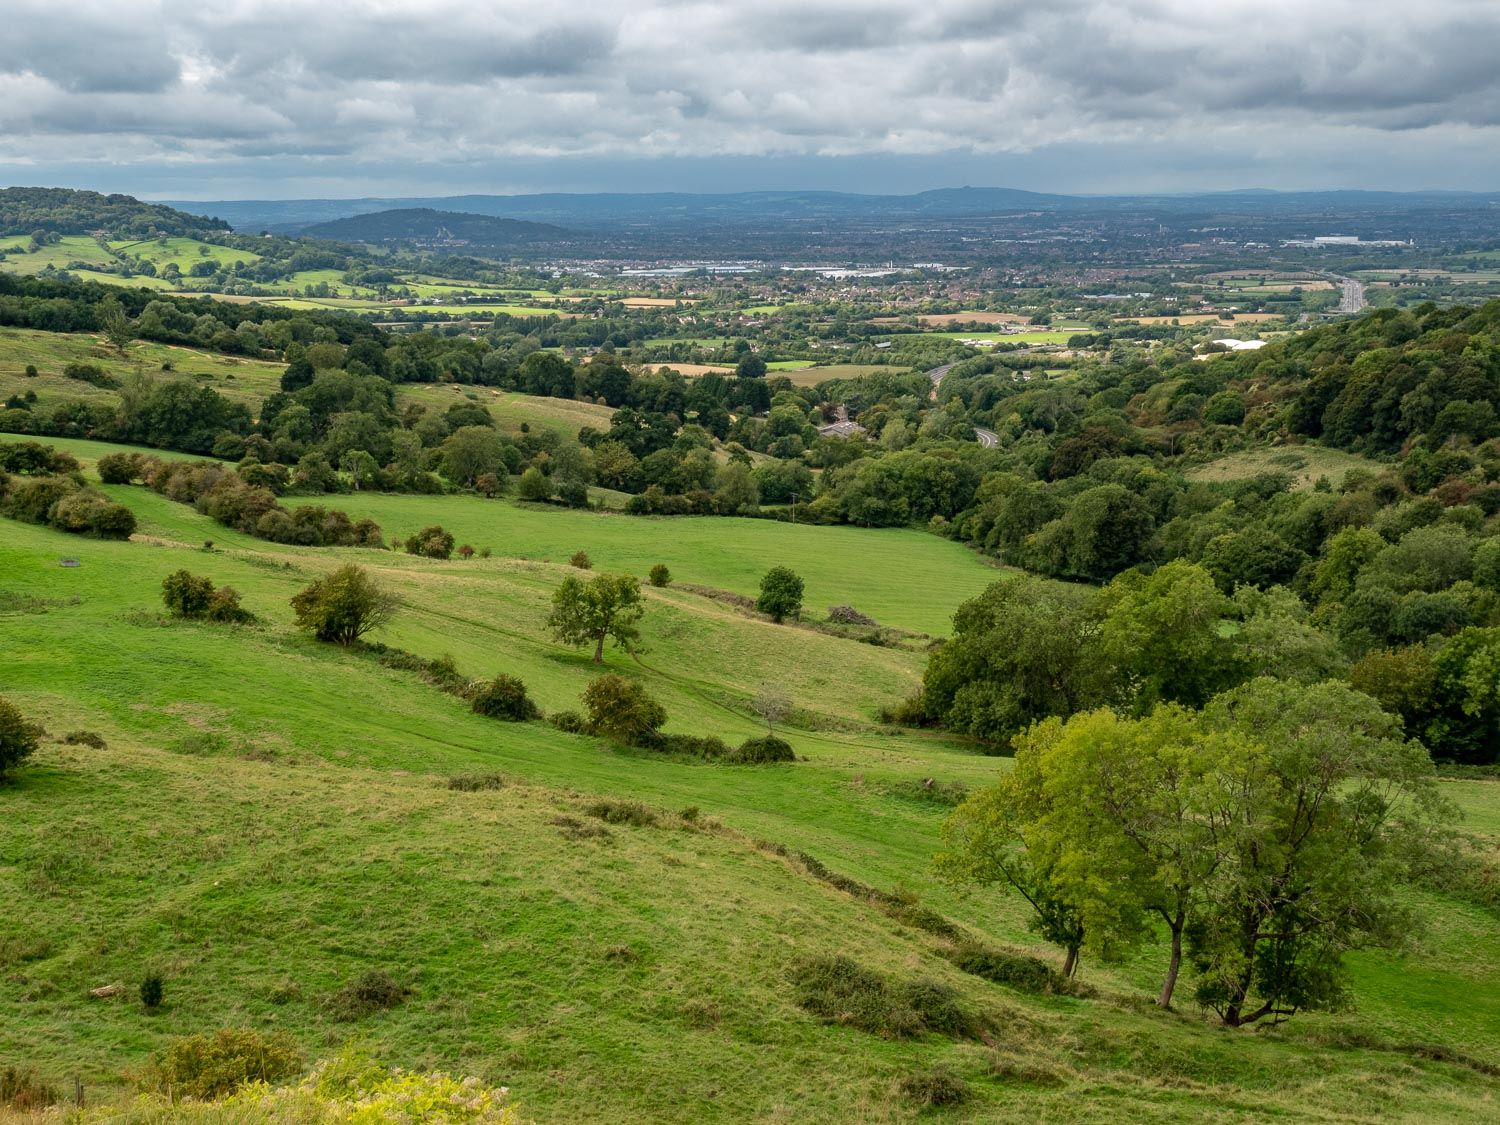 A Landscape Photograph Showing Fields And Hills Into The Distance On The Cotswold Way.